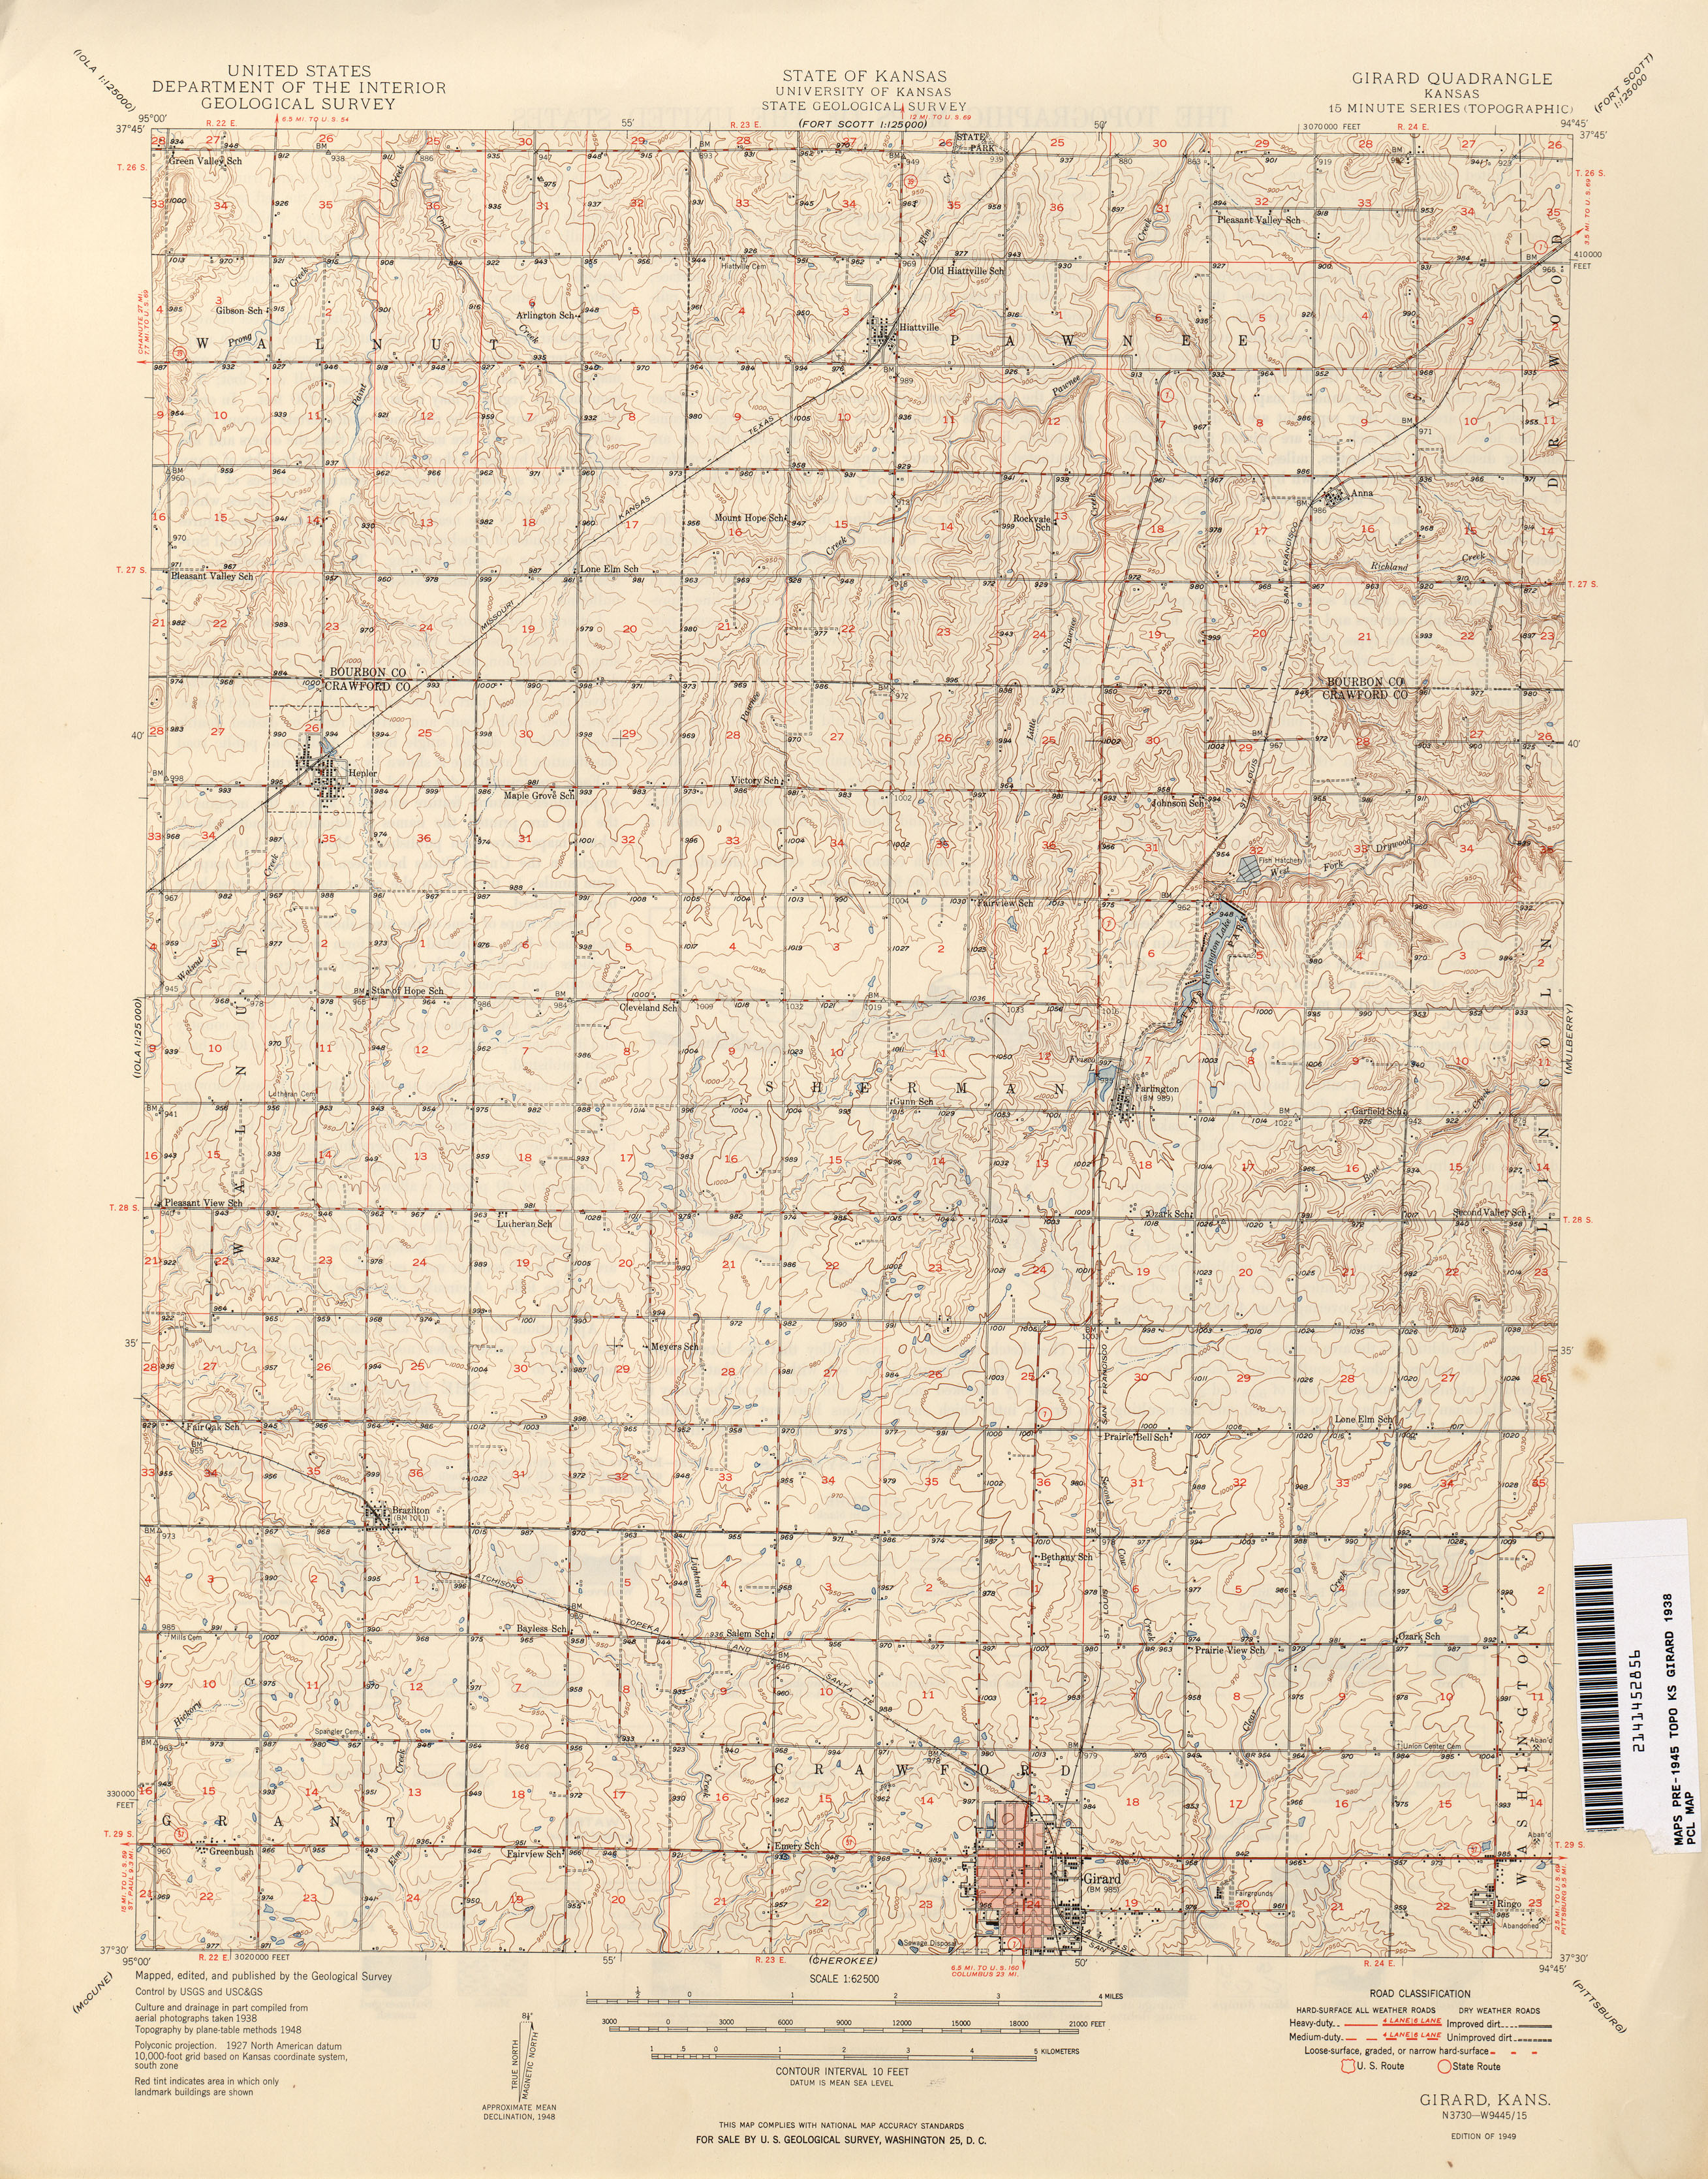 Kansas Historical Topographic Maps - Perry-Castañeda Map Collection on small kansas town map, atlas road map, indiana road map, lawrence kansas road map, md road map, mo road map, idaho road map, current road conditions kansas map, kc road map, kansas county map, topeka road map, km road map, kansas city road map, kansas driving map, nebraska road map, oklahoma road map, kentucky road map, wichita road map, co road map, bc british columbia road map,